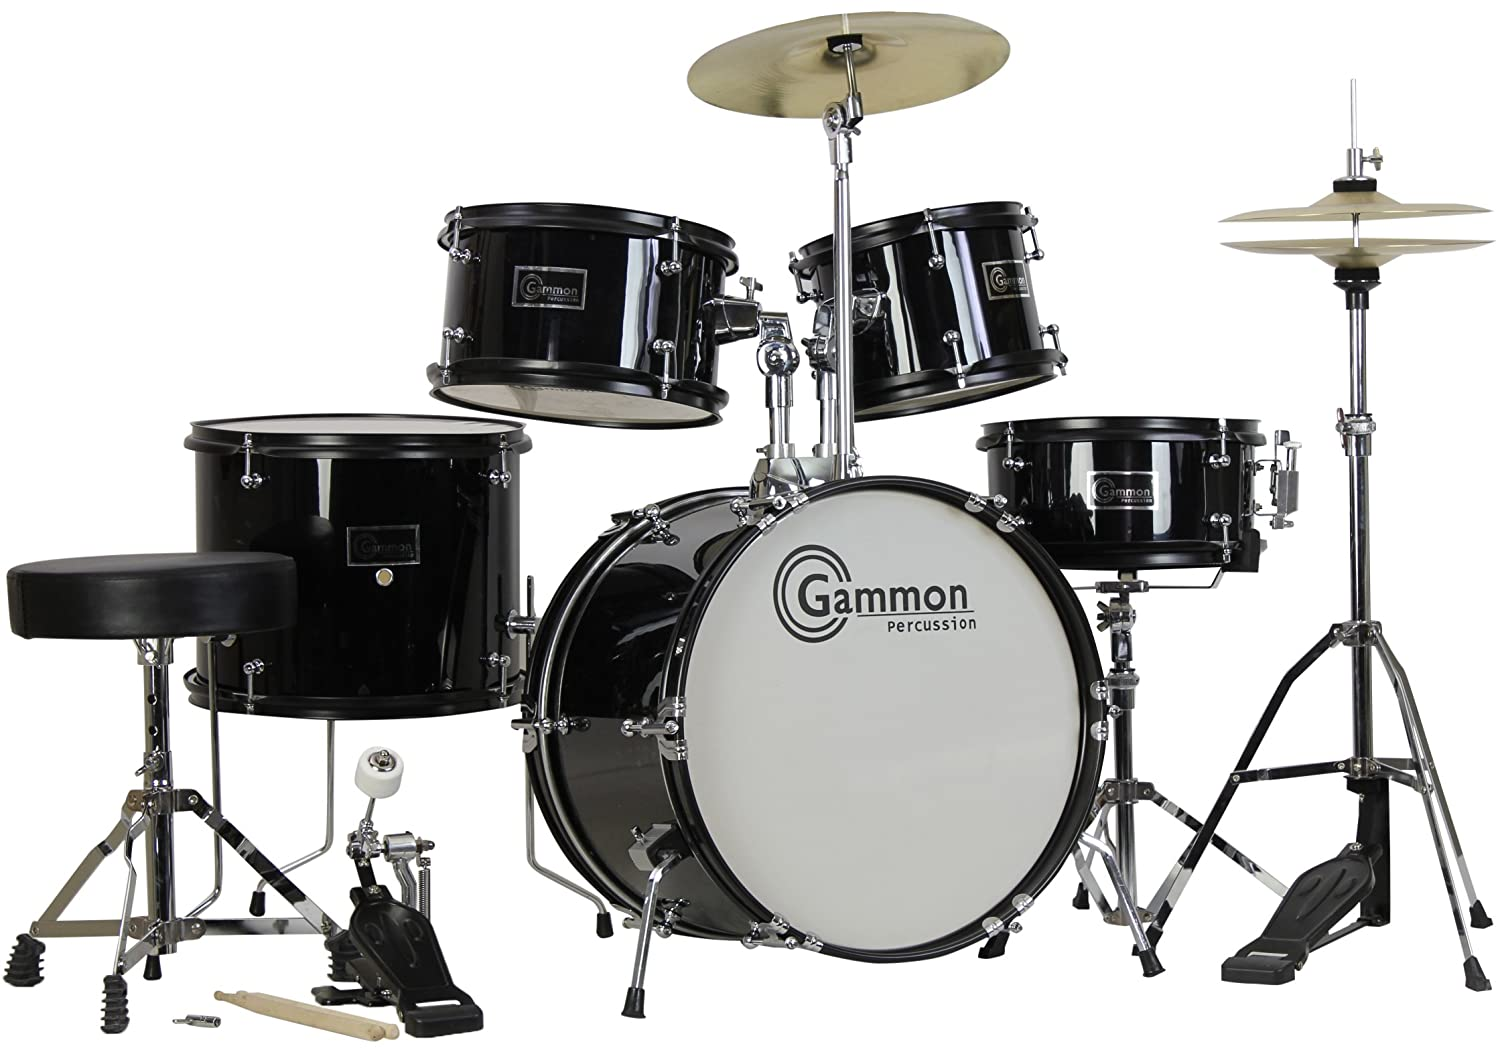 Amazon Gammon 5 Piece Junior Starter Drum Kit With Cymbals Hardware Sticks Throne